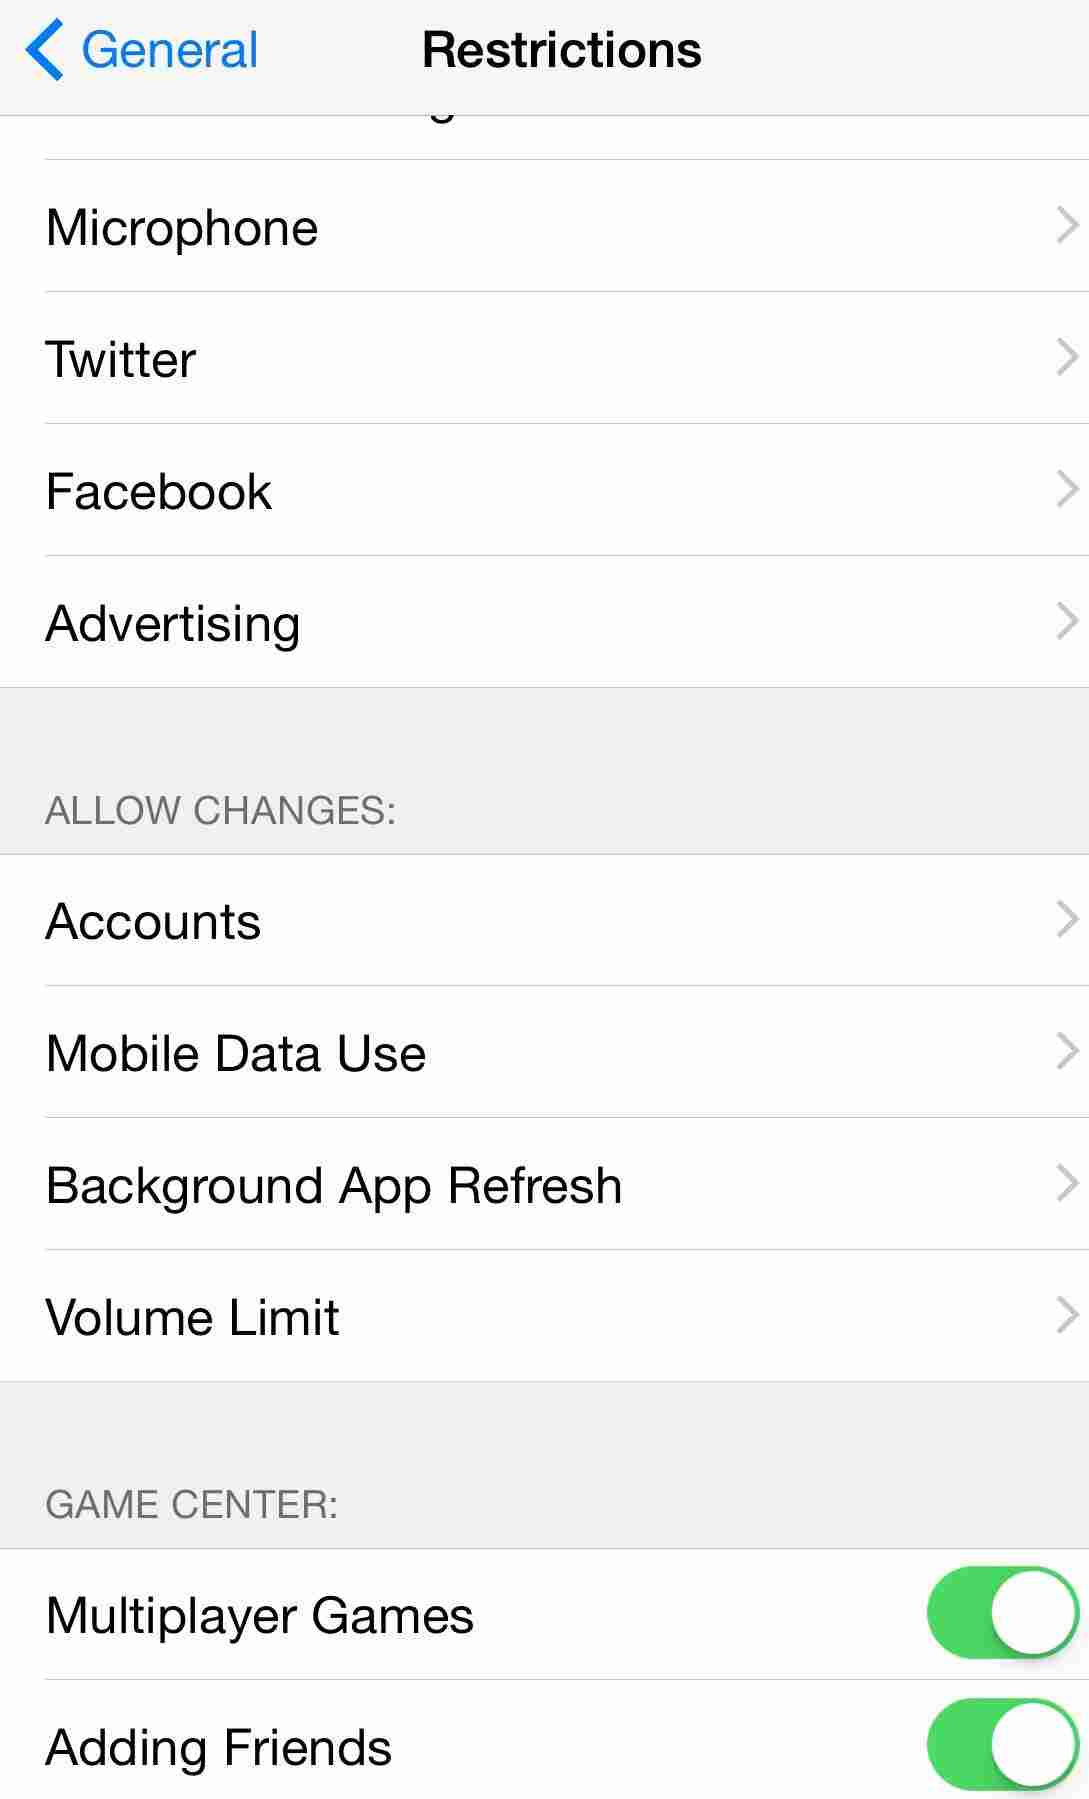 Restrict or Block adding friends and Multiplayer games in game Center using Parental controls